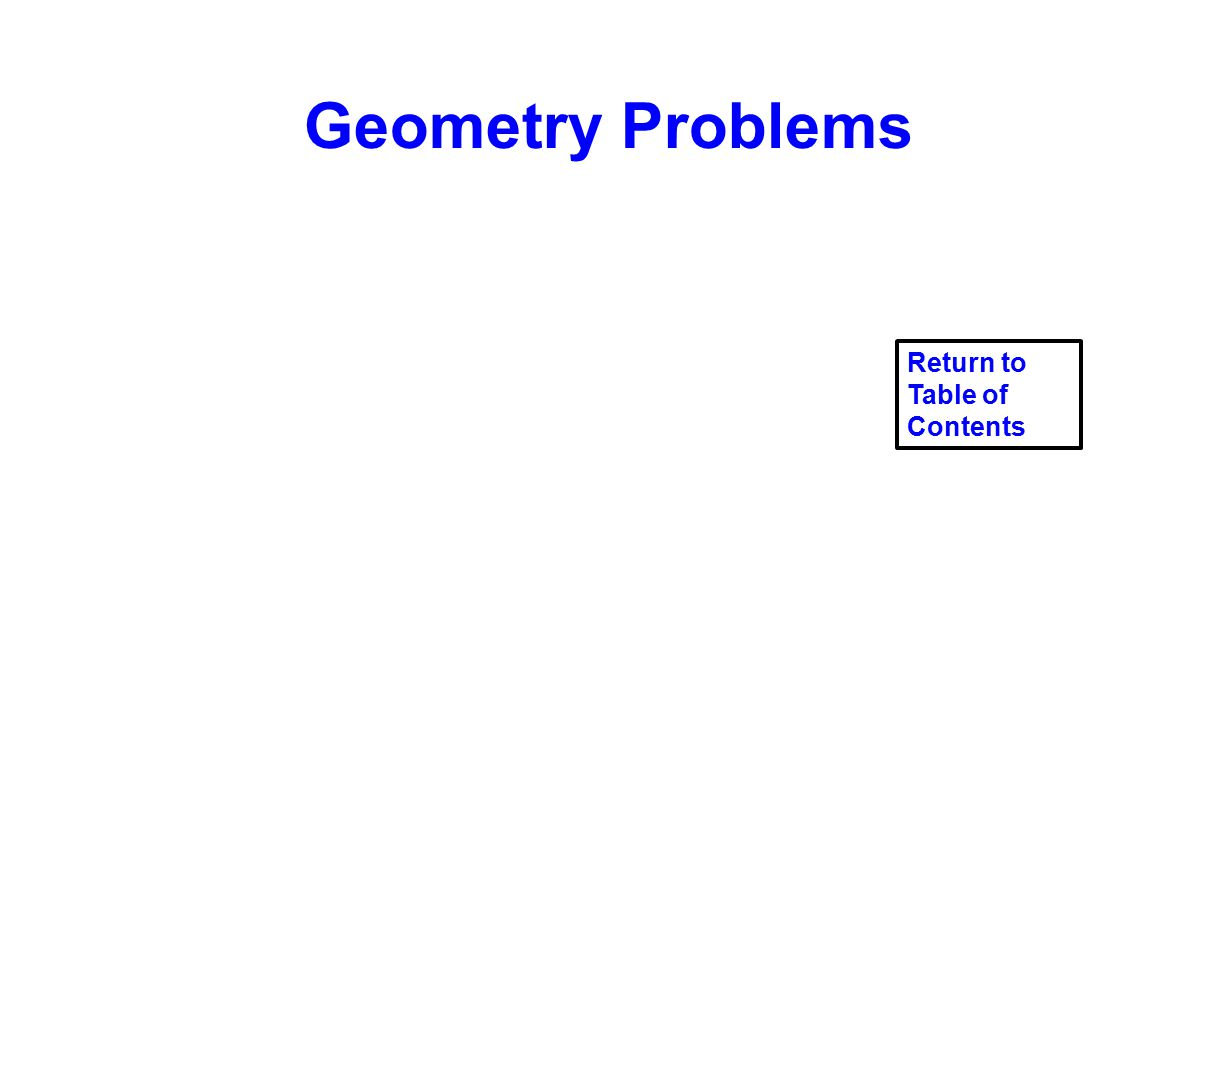 Geometry Problems Return to Table of Contents